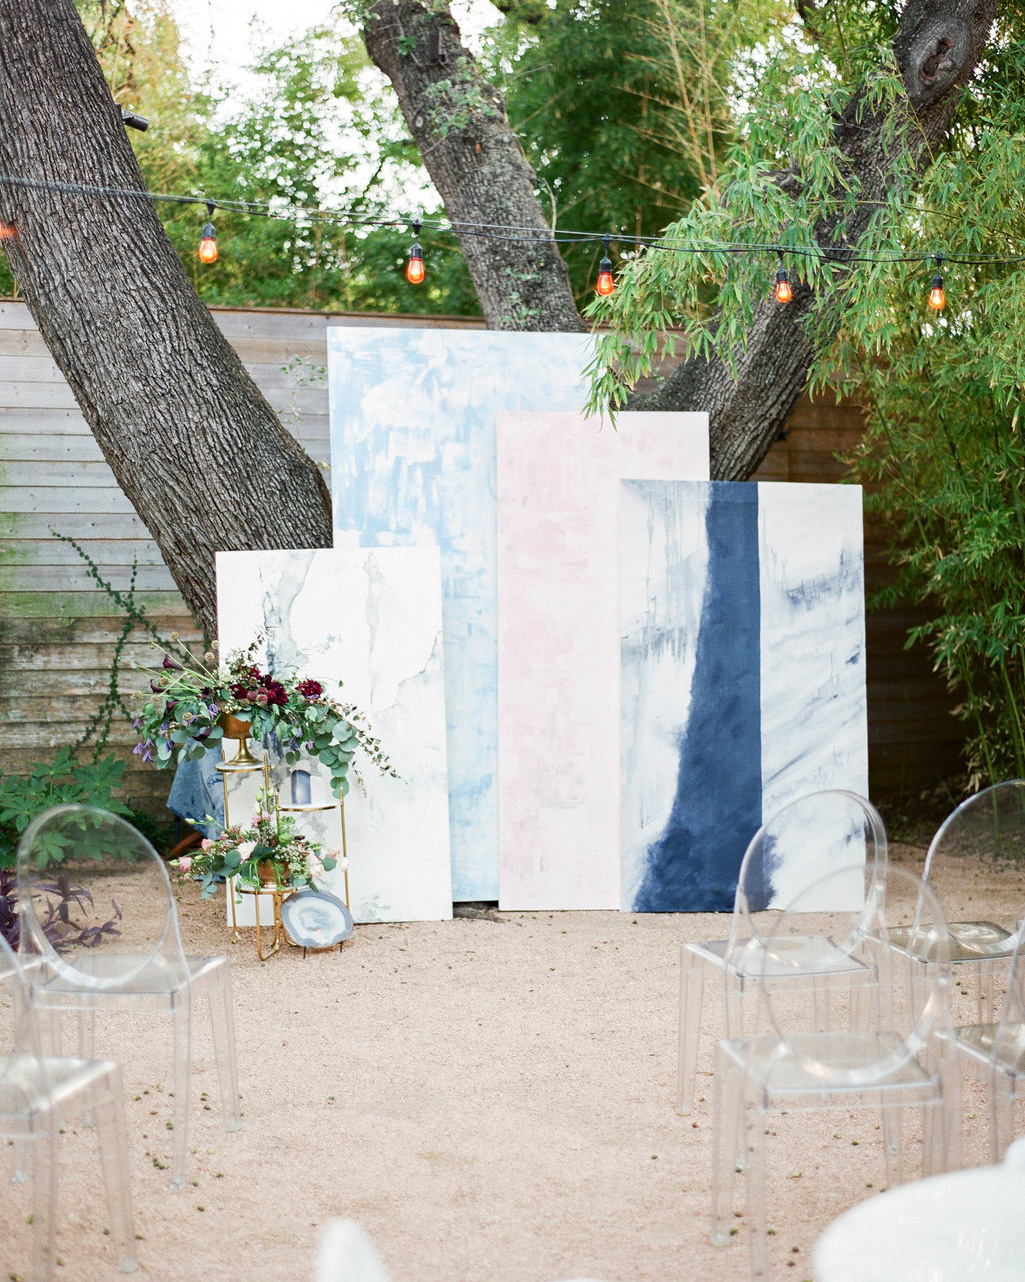 art-inspired wedding ideas abstract paintings ceremony decorations